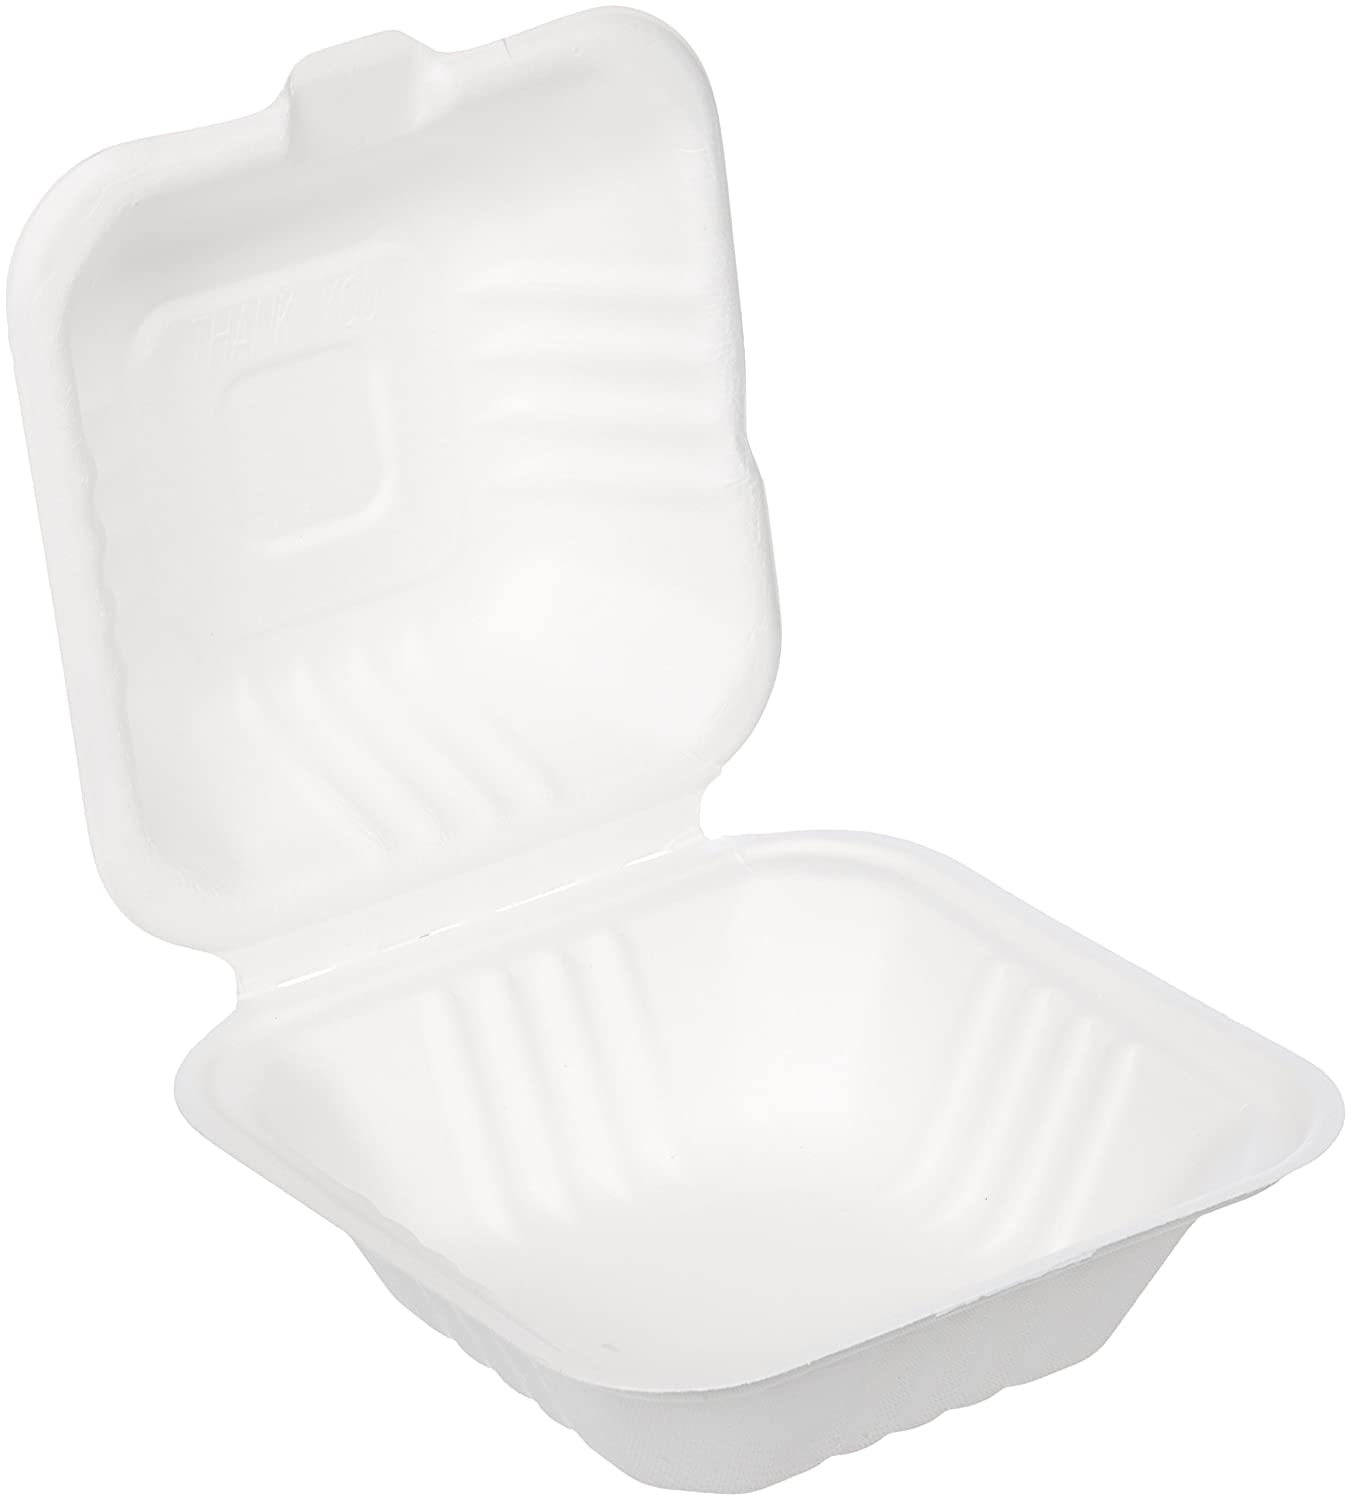 """AmazonBasics Compostable Clamshell Take-Out Food Container, 6"""" x 6"""" x 3"""", Pack of 250"""